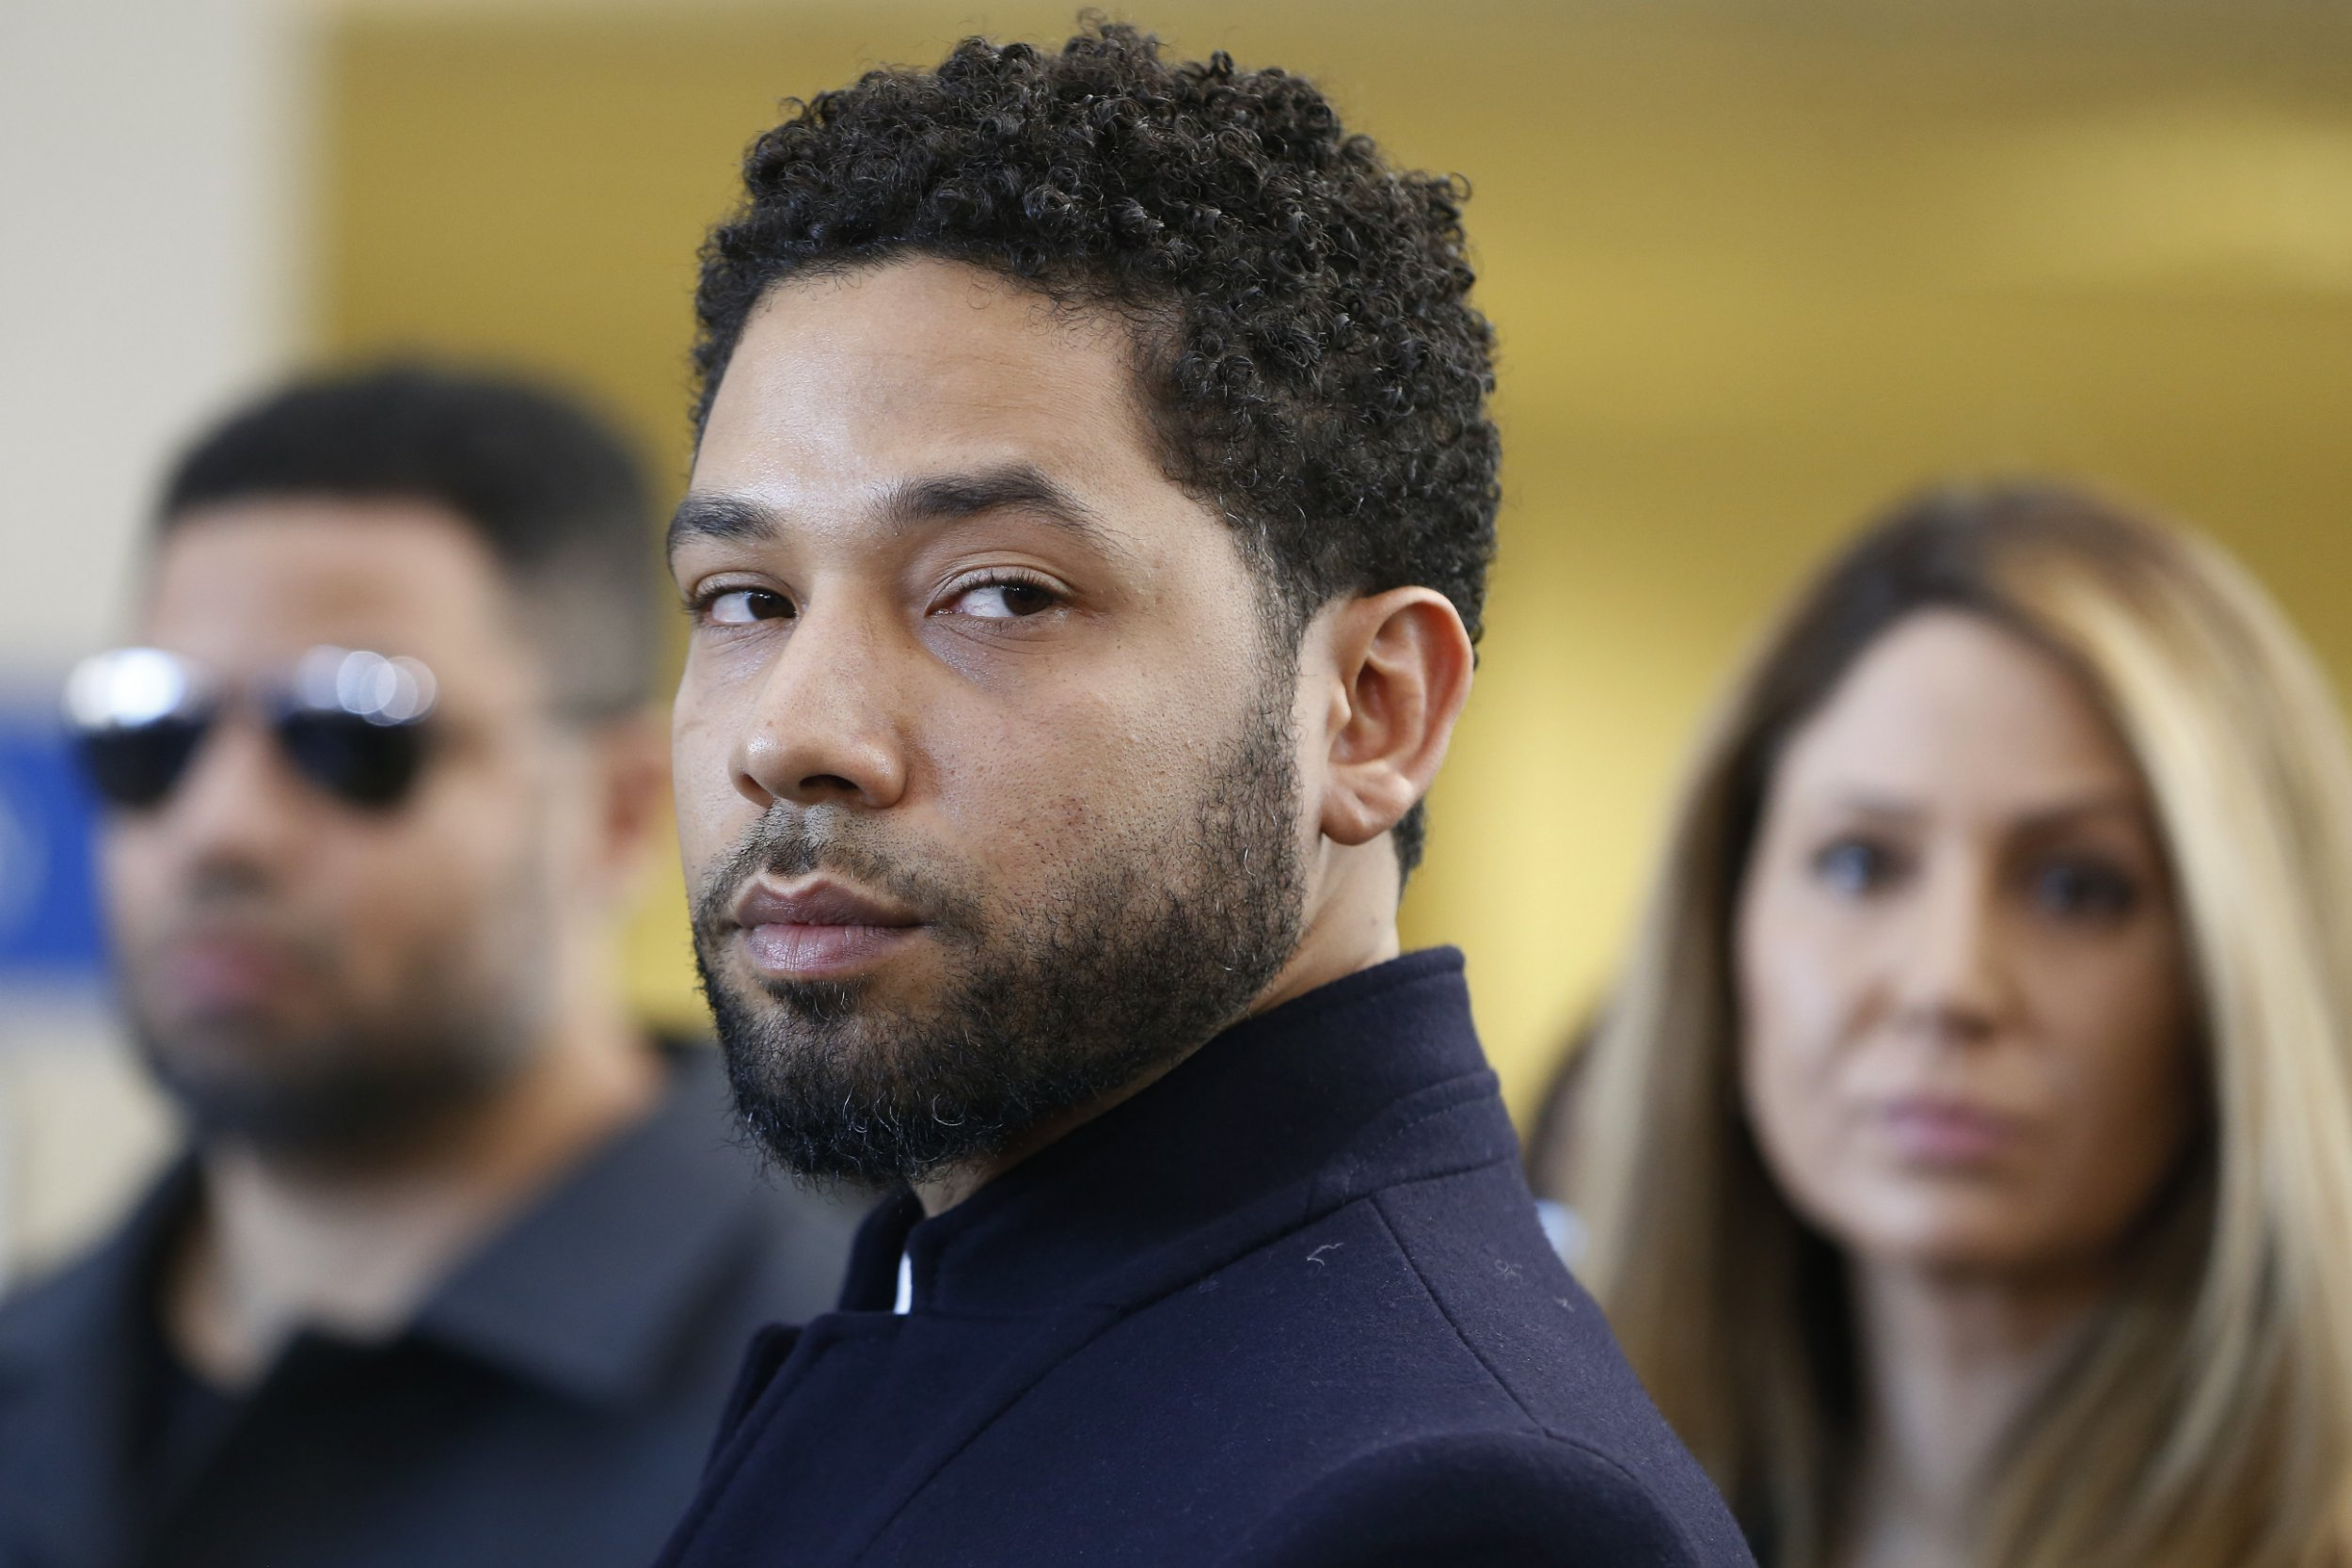 Who did Jussie Smollett play in Empire and what else has the actor been in?